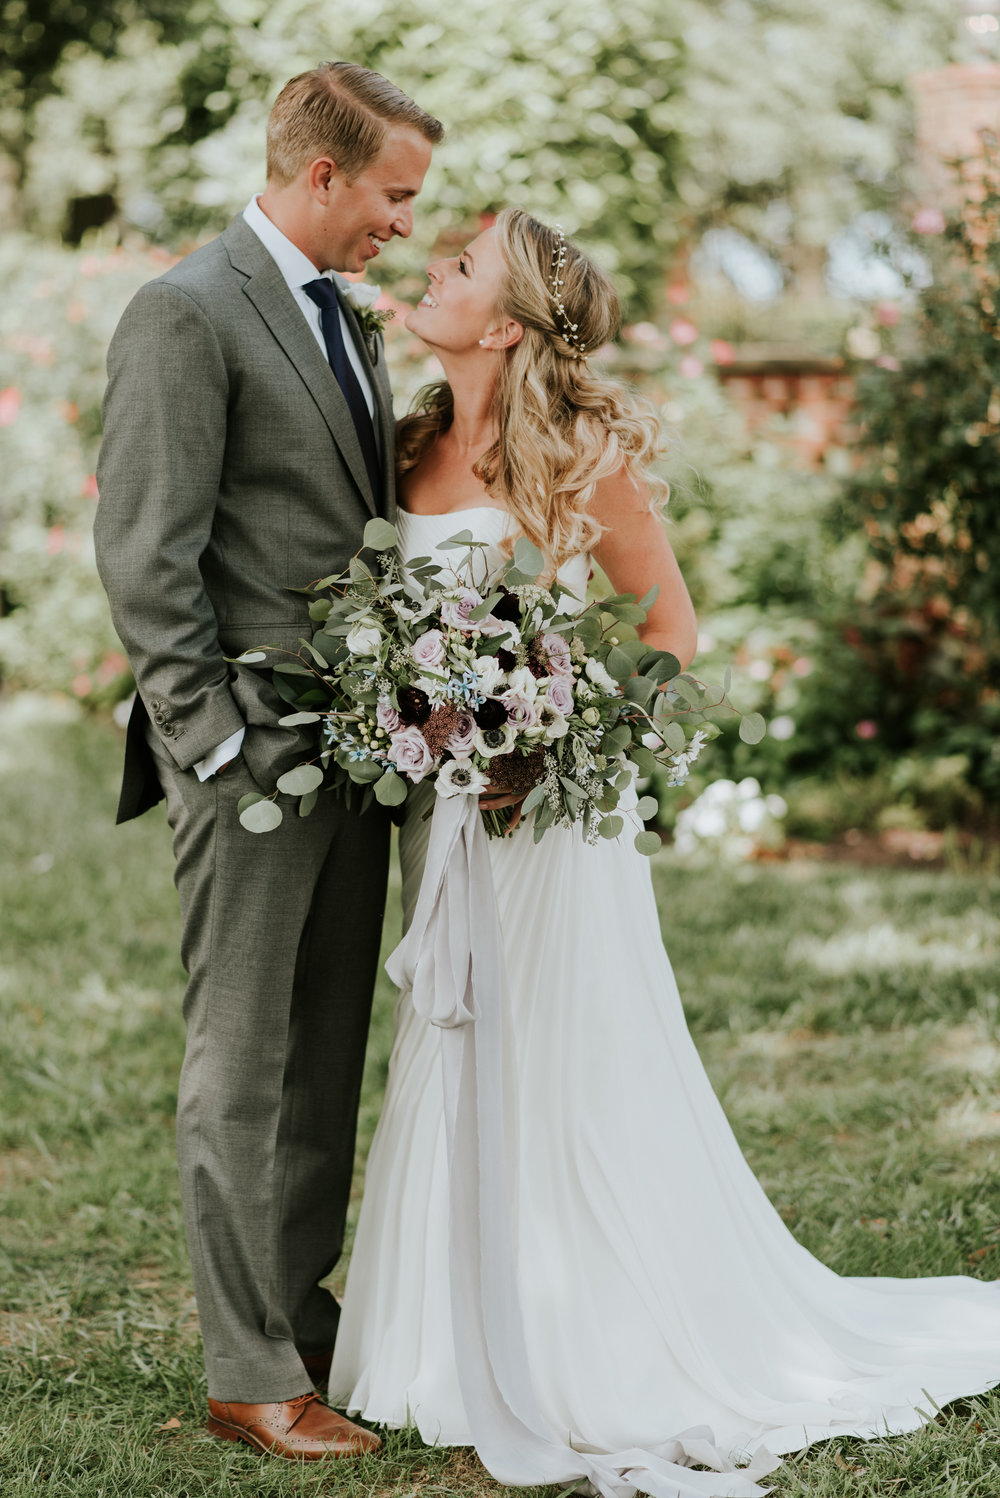 Brittland Manor Chestertown Rustic Oyster Themed Eastern Shore Maryland Outdoor Wedding by East Made Event Company Wedding Planner and Bekah Kay Creative148.jpg